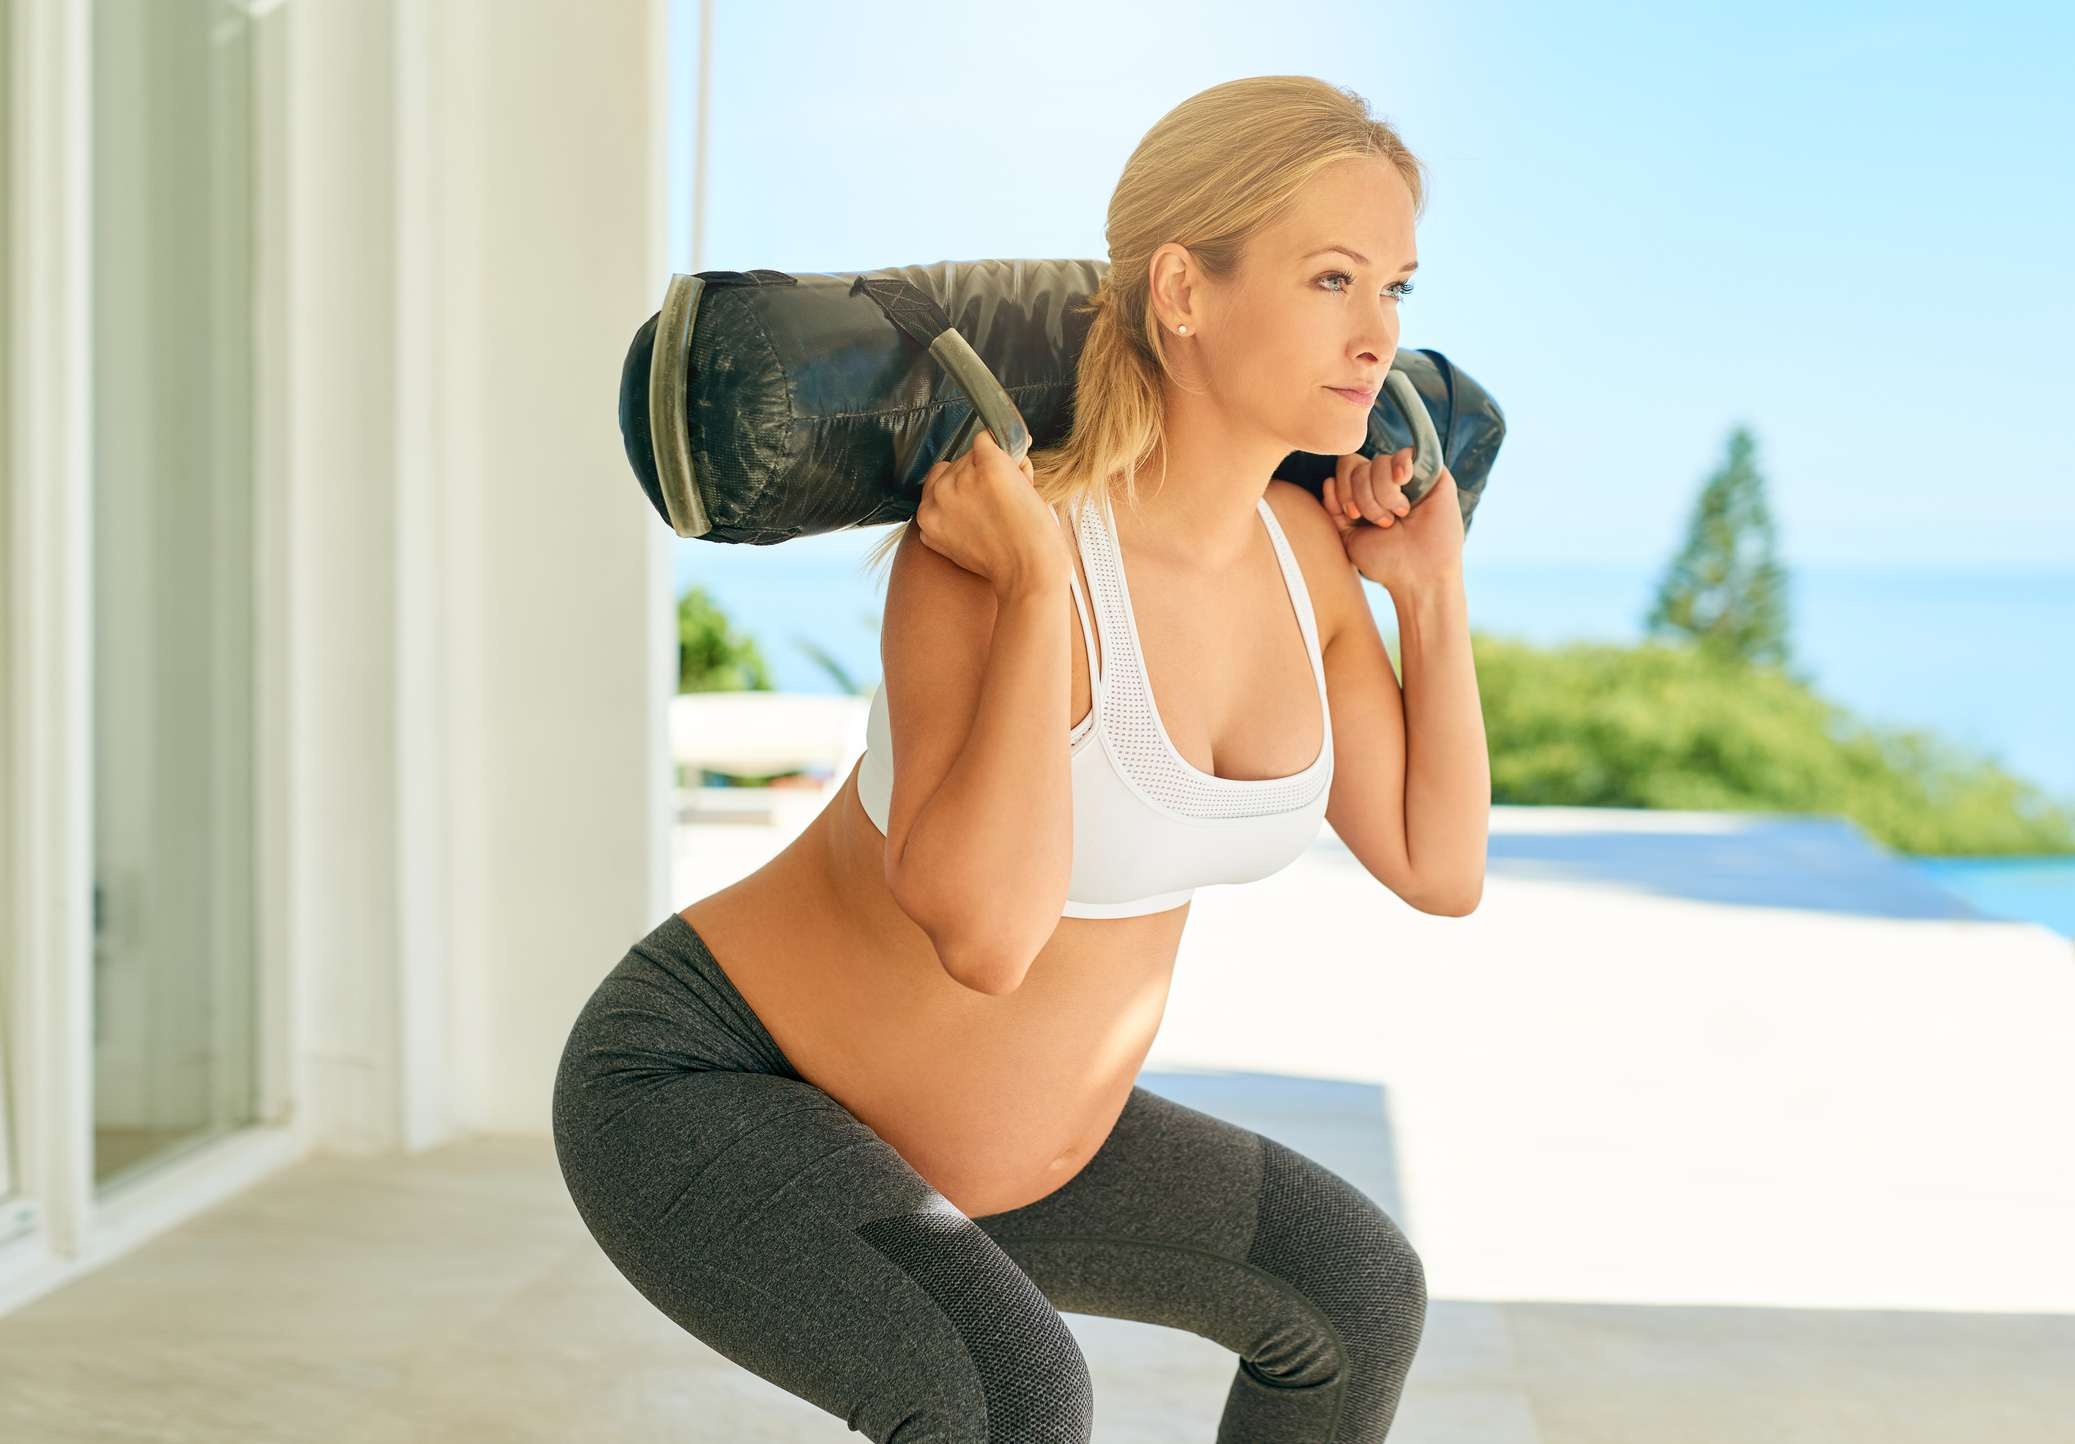 Shot of a pregnant woman working out with a sand bag on the patio at home